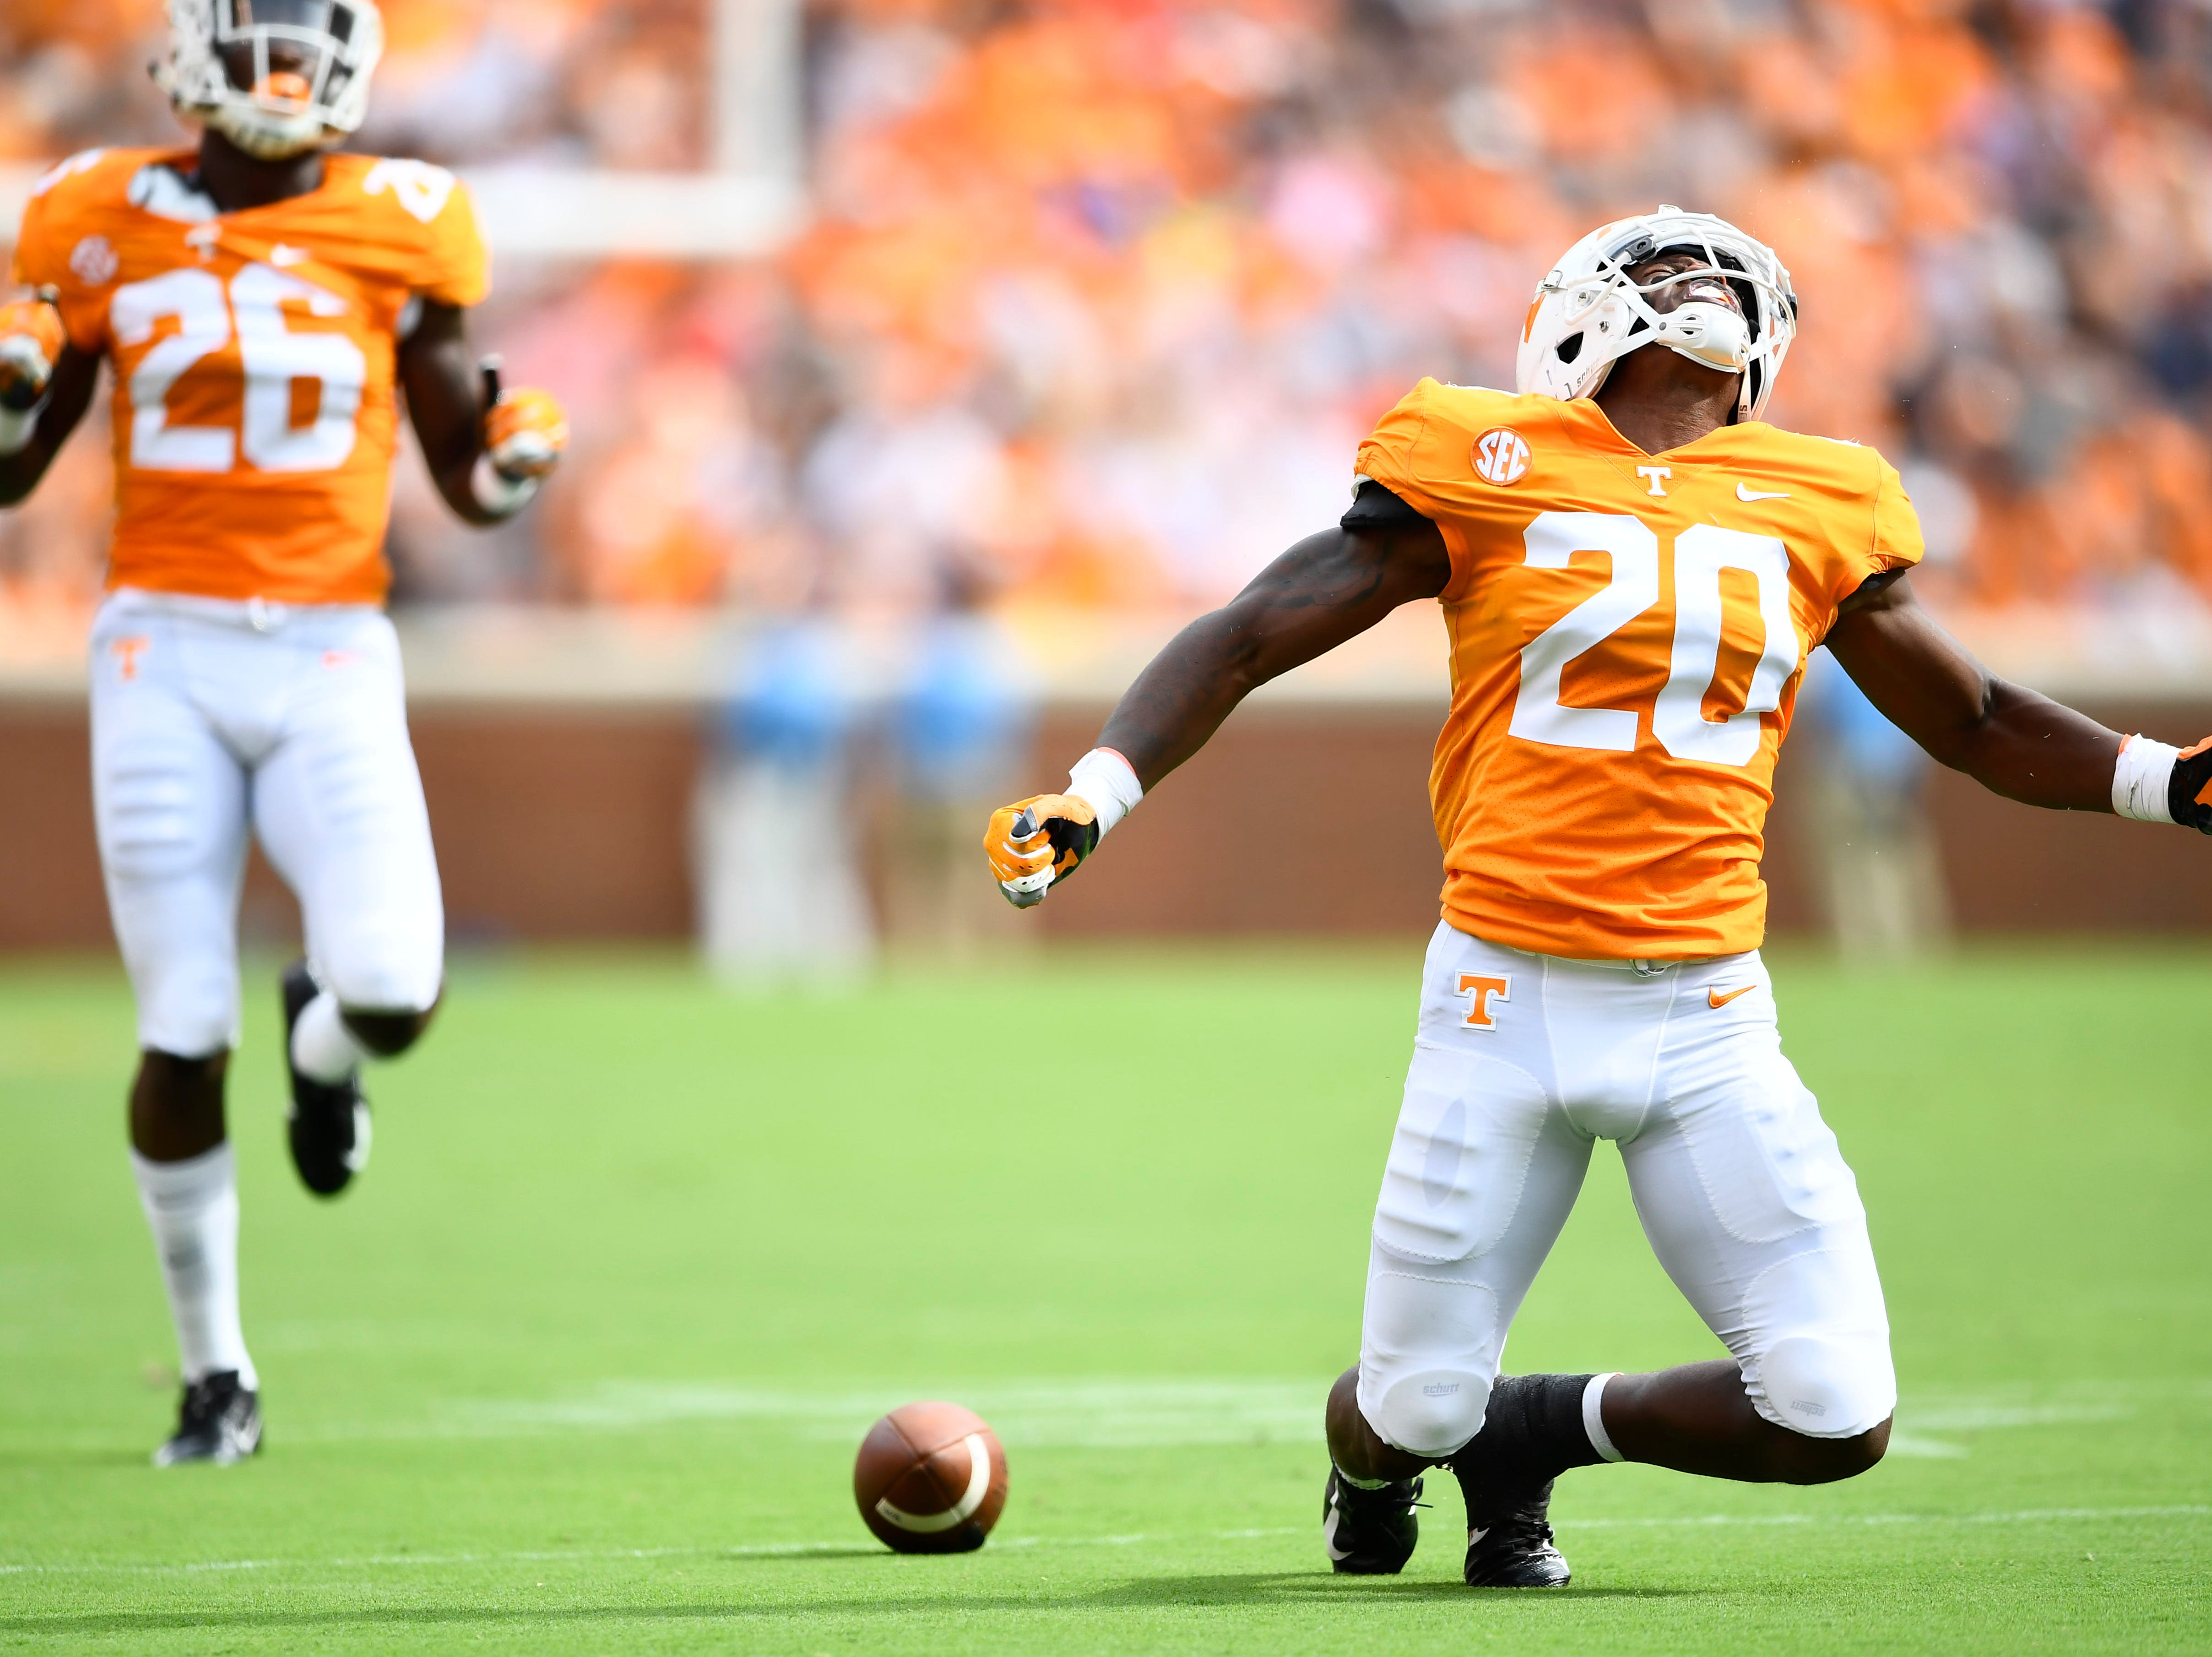 Tennessee defensive back Bryce Thompson (20) reacts after missing a pass during a game between Tennessee and ETSU at Neyland Stadium in Knoxville, Tennessee on Saturday, September 8, 2018.